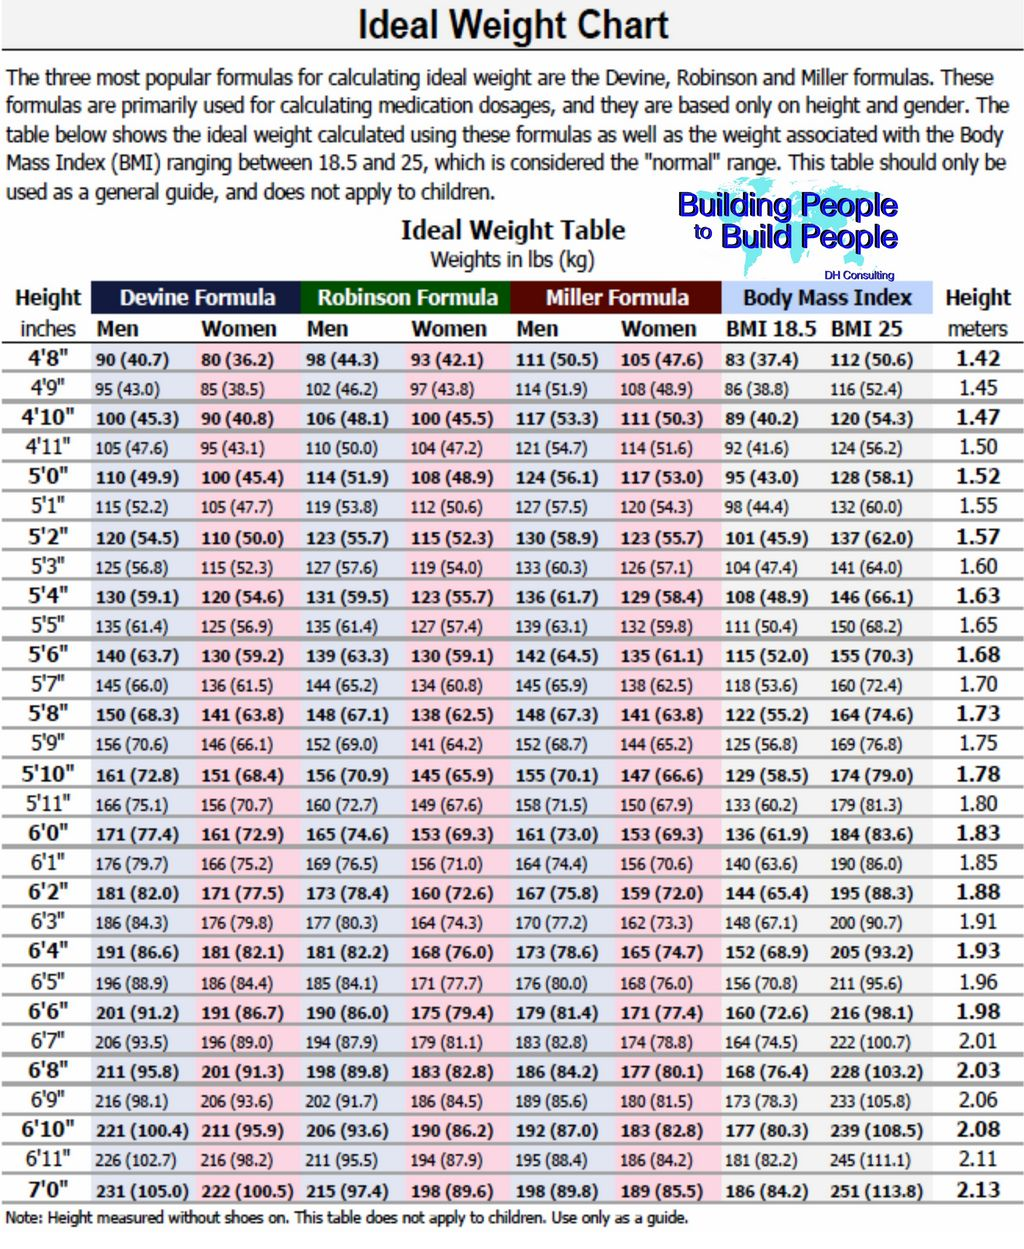 Ideal weight chart with the 3 most popular formulas for calculating ideal weight chart with the 3 most popular formulas for calculating ideal weight utilizing devine nvjuhfo Image collections